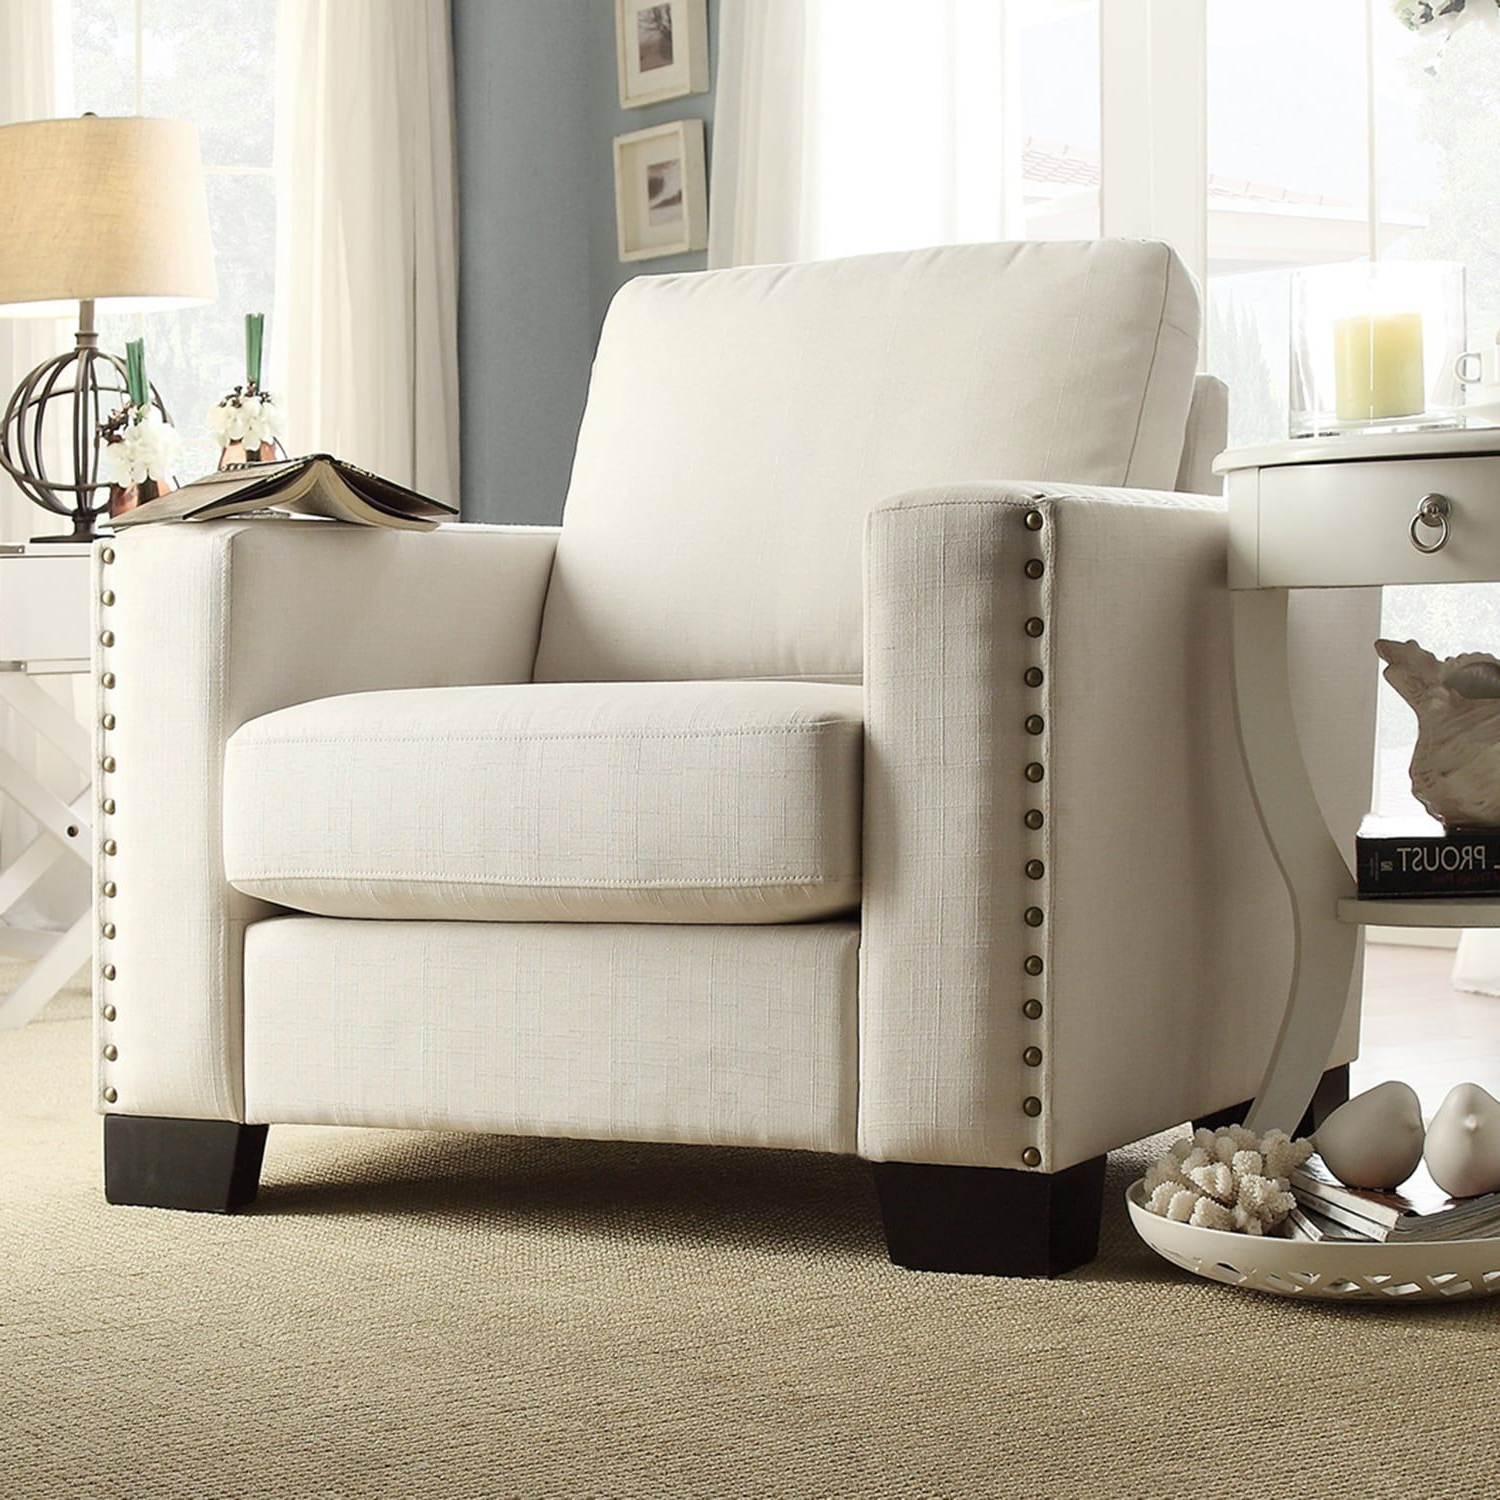 Homevance Caldwell Arm Chair #caldwell, #homevance, #chair Throughout Most Popular Caldwell Armchairs (View 3 of 20)